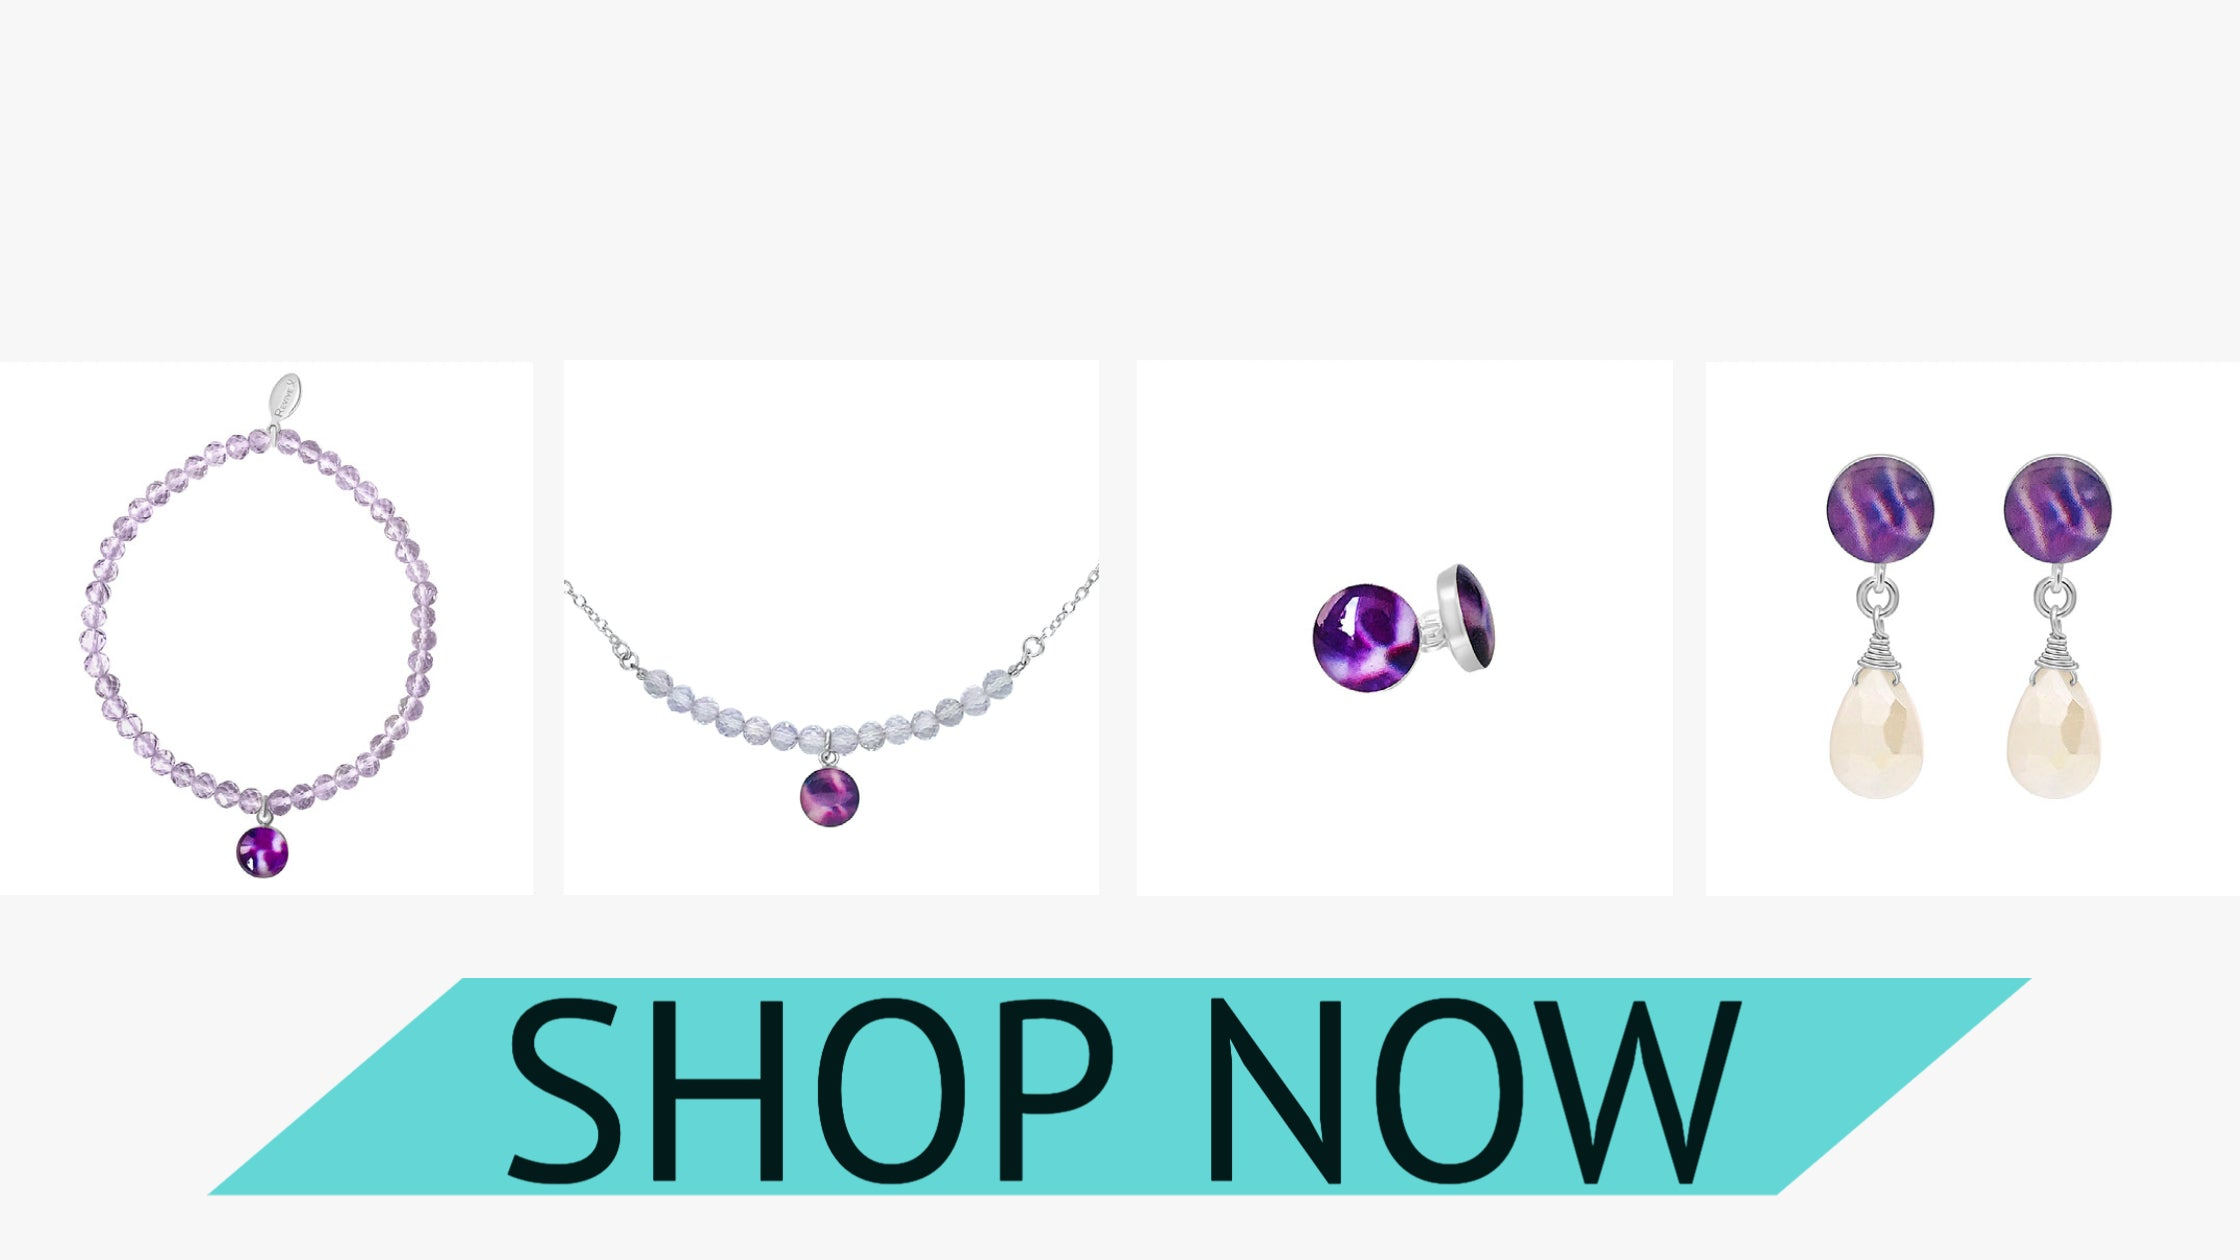 pancreatic cancer awareness jewelry that gives back